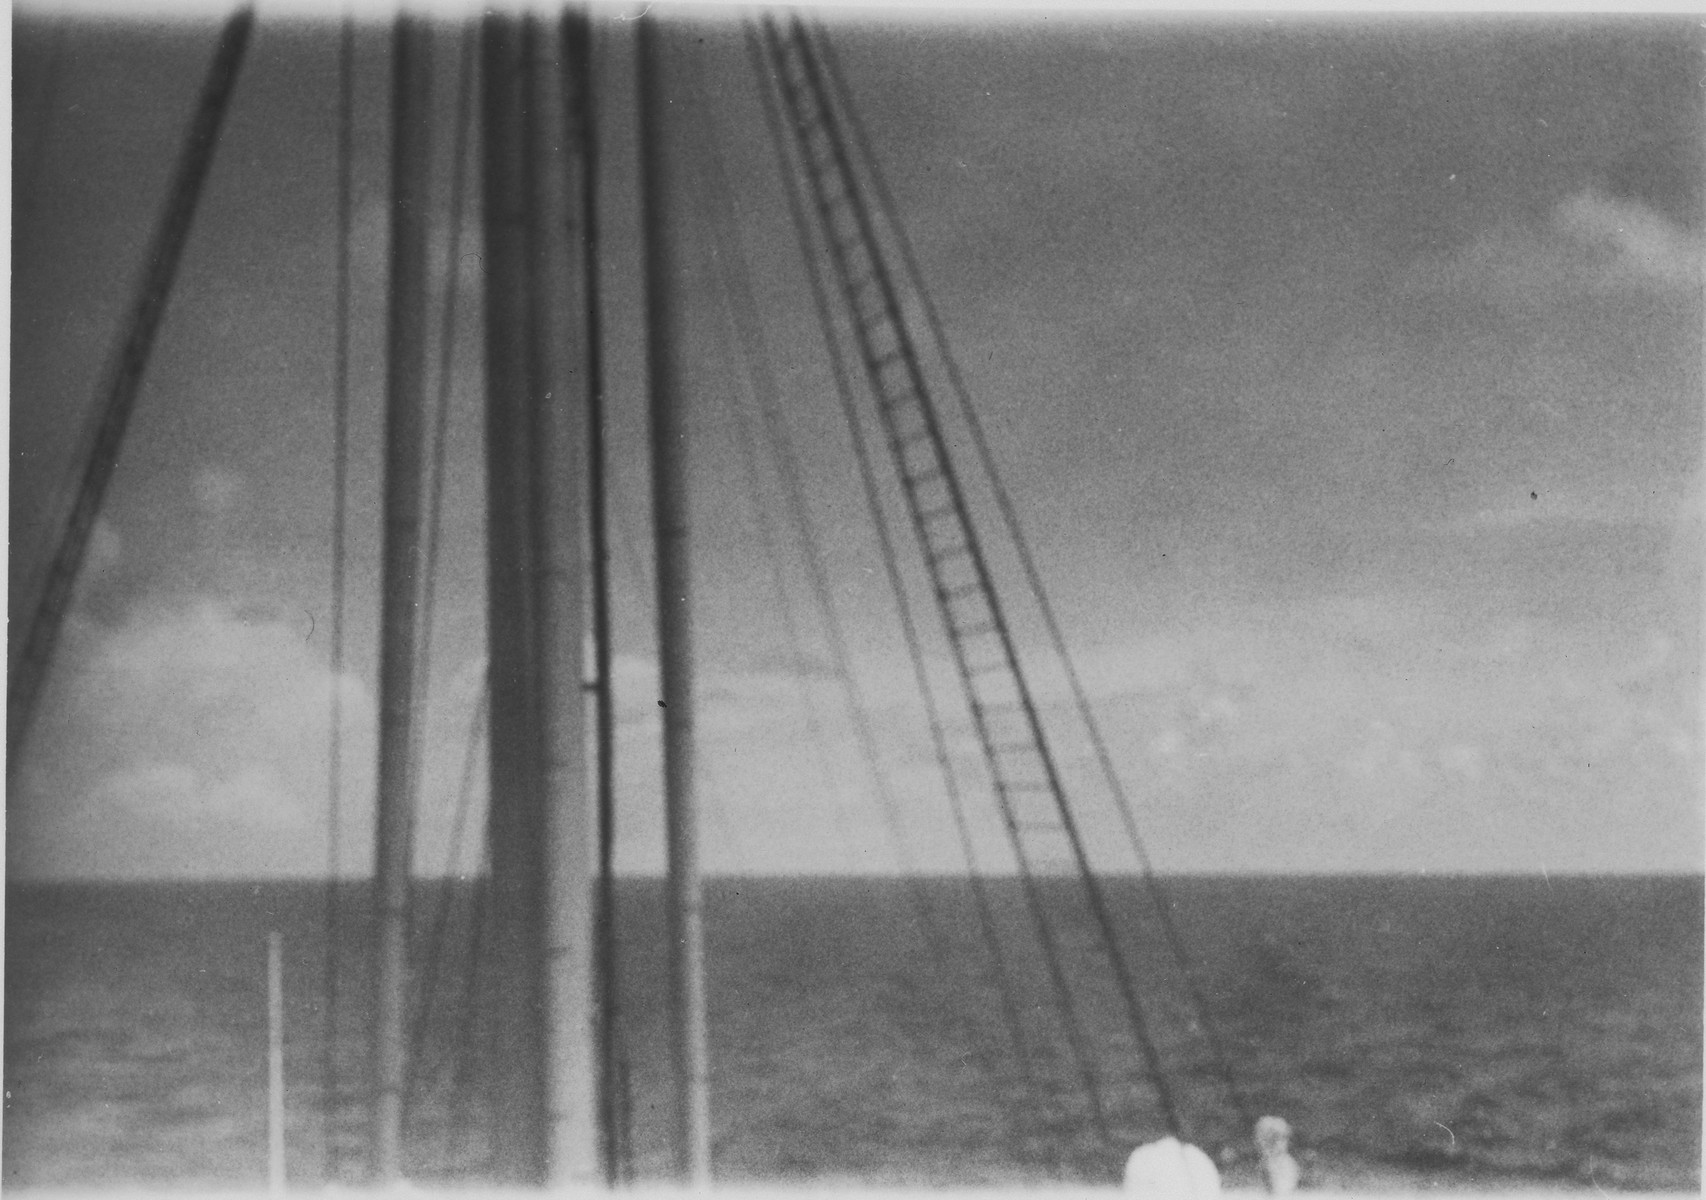 Photograph of one of the masts of the MS St. Louis.